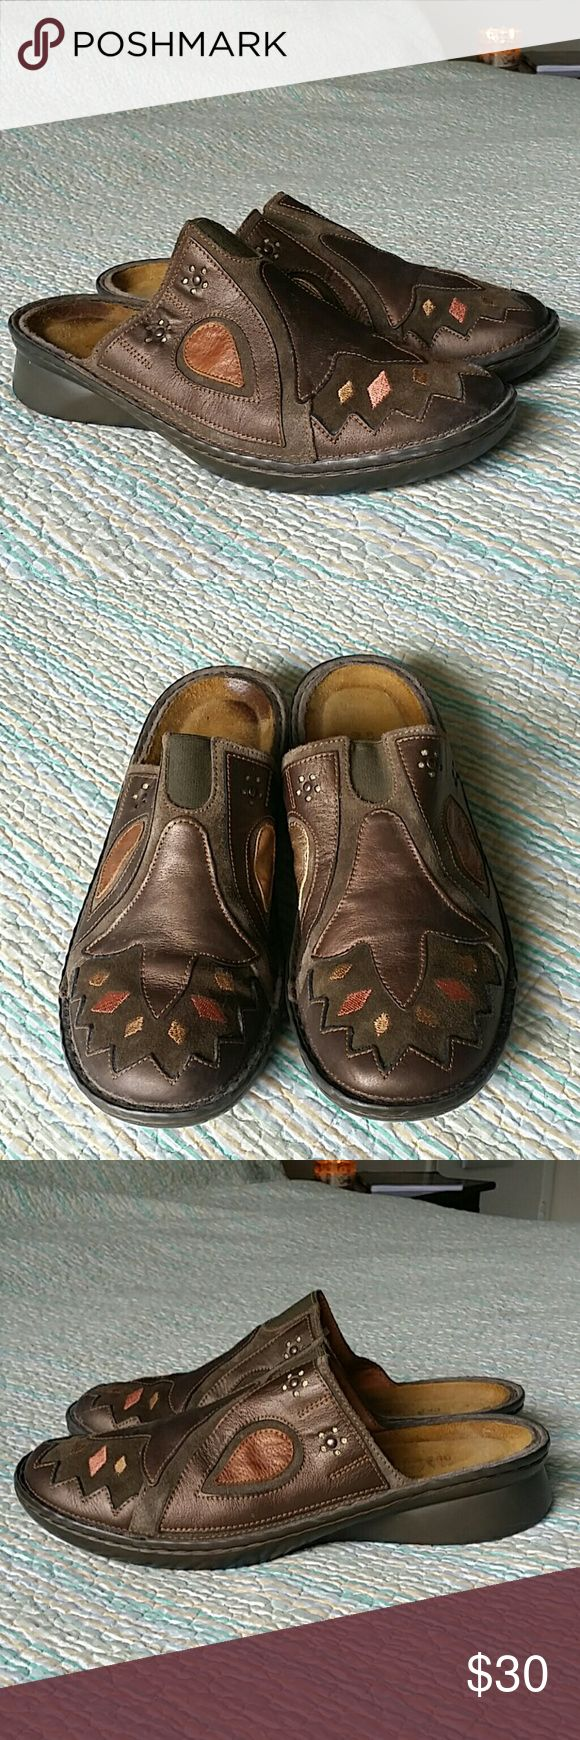 NAOT Wms 10 Eu 40 Brown Leather Slides Mules Clogs NAOT Wms 10 Eu 40 Brown Leather Slides Mules Clogs Gold Patch Embroidered Floral Naot Shoes Mules & Clogs